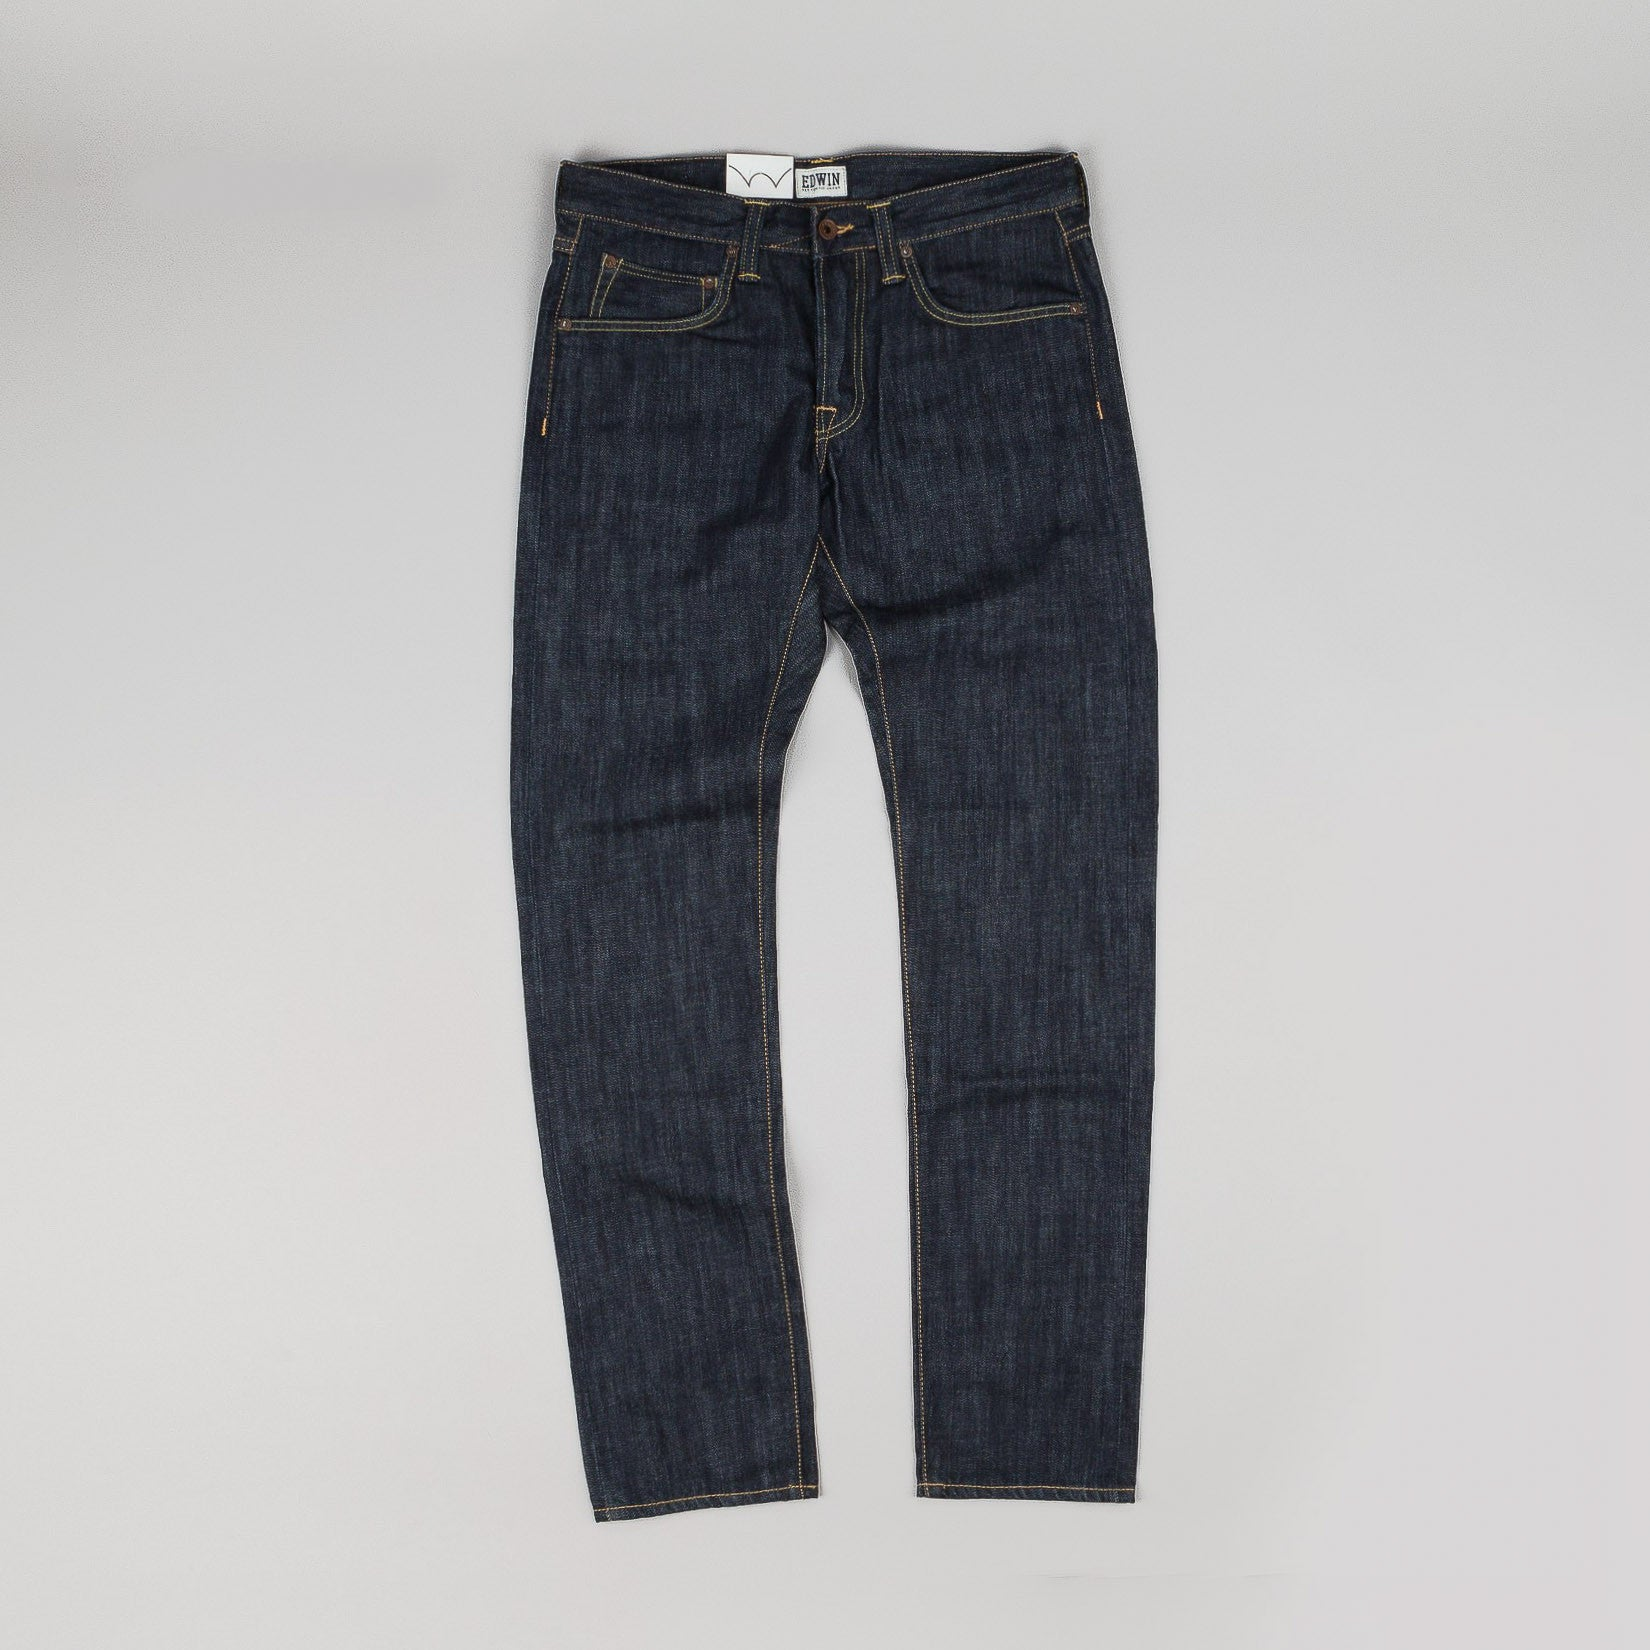 Edwin ED-55 Jeans Dark Blue Denim Rinsed